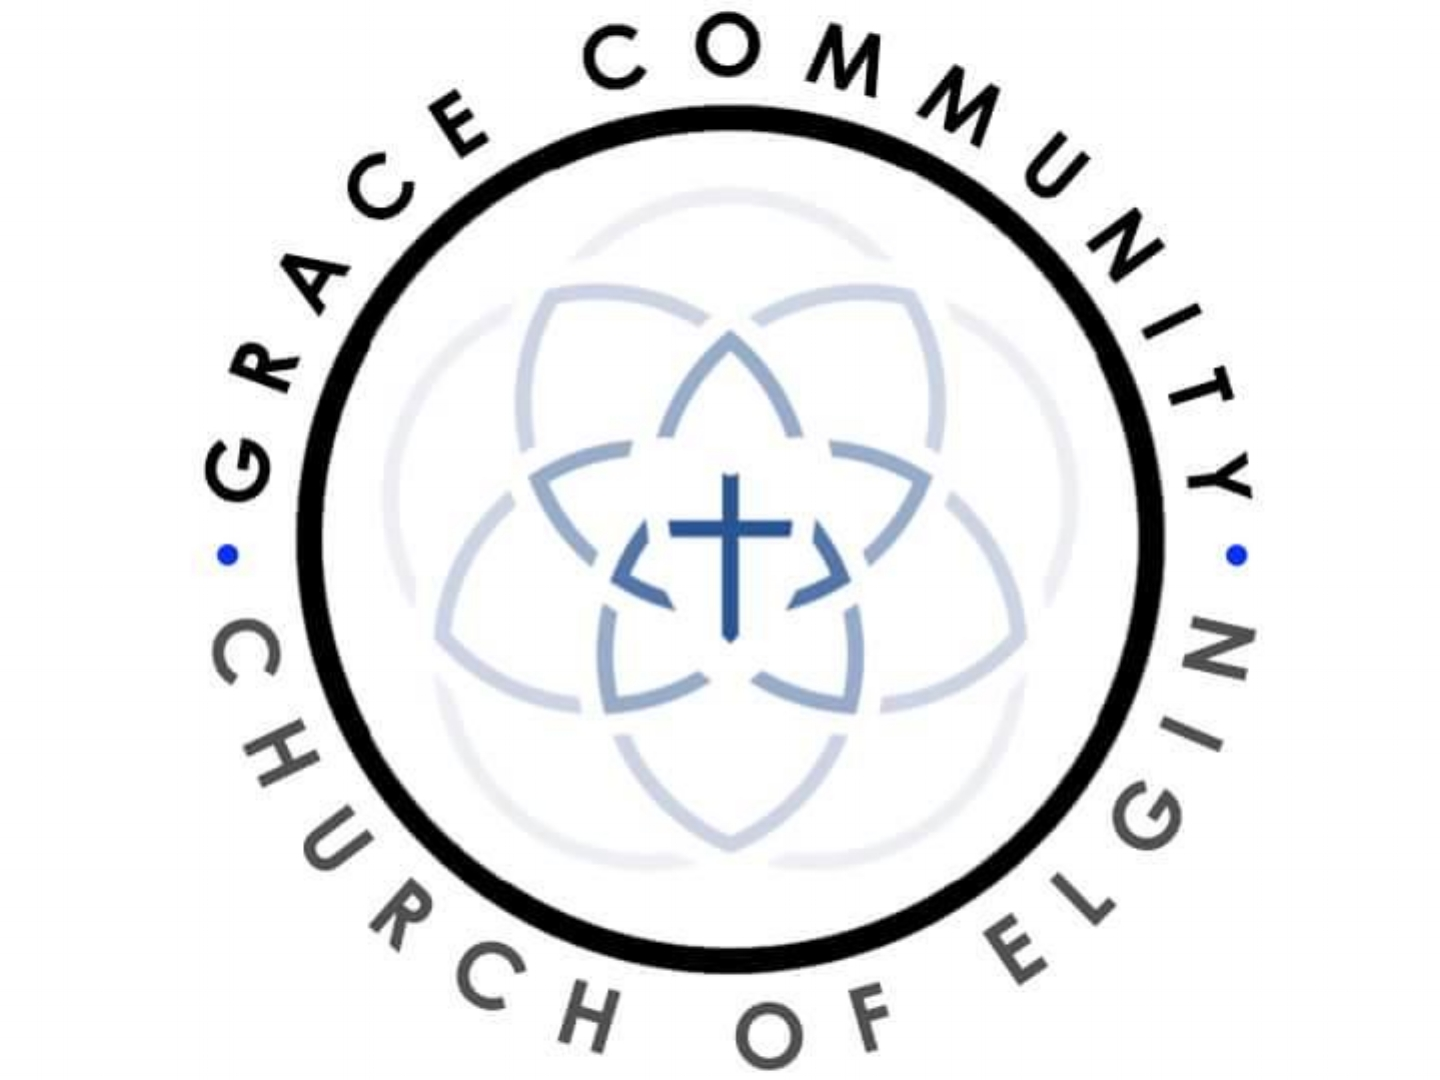 Grace Community Church of Elgin